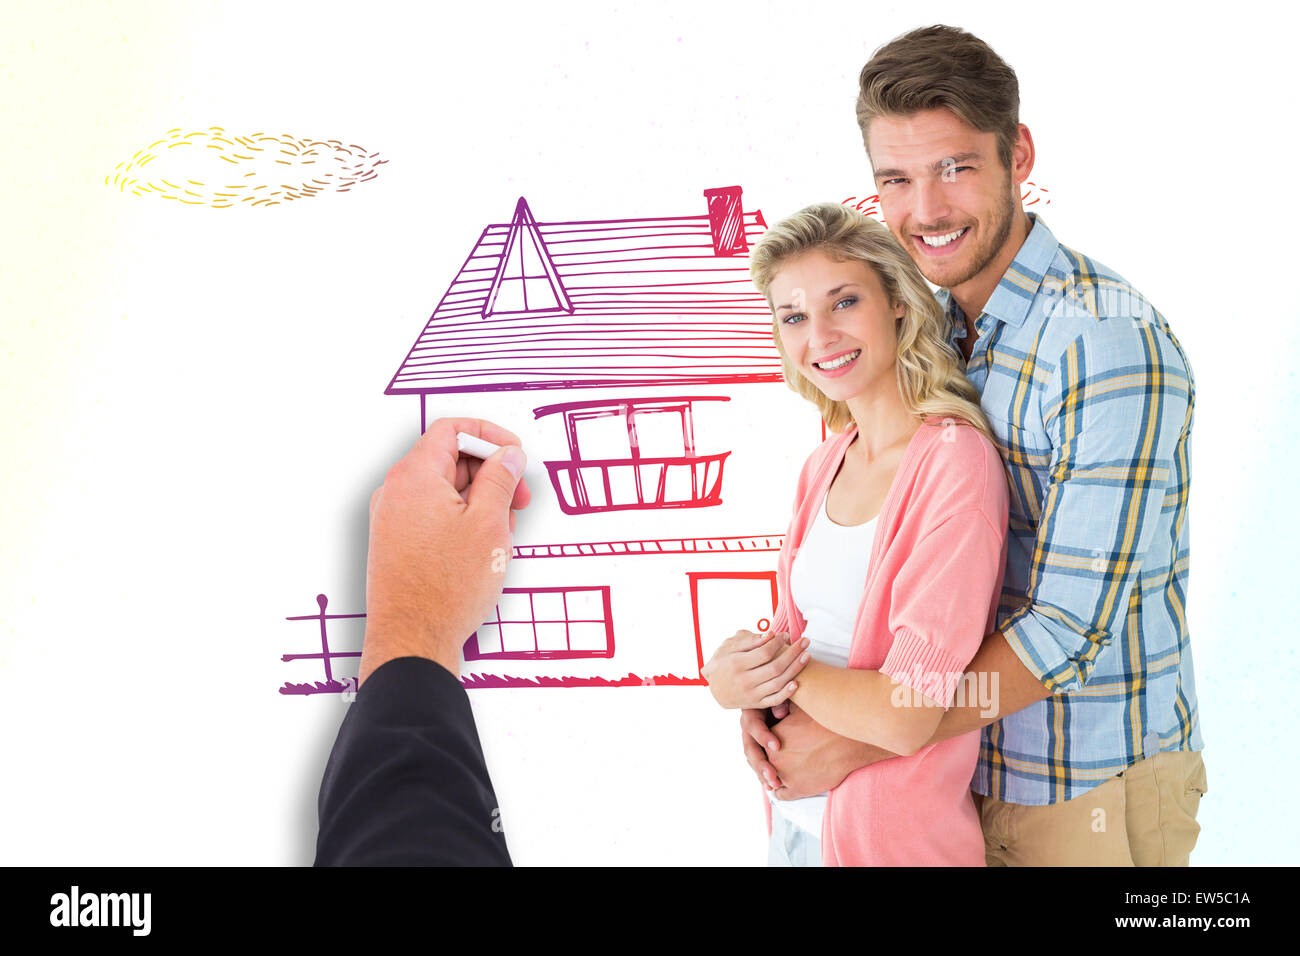 Composite image of attractive couple embracing and smiling at camera - Stock Image